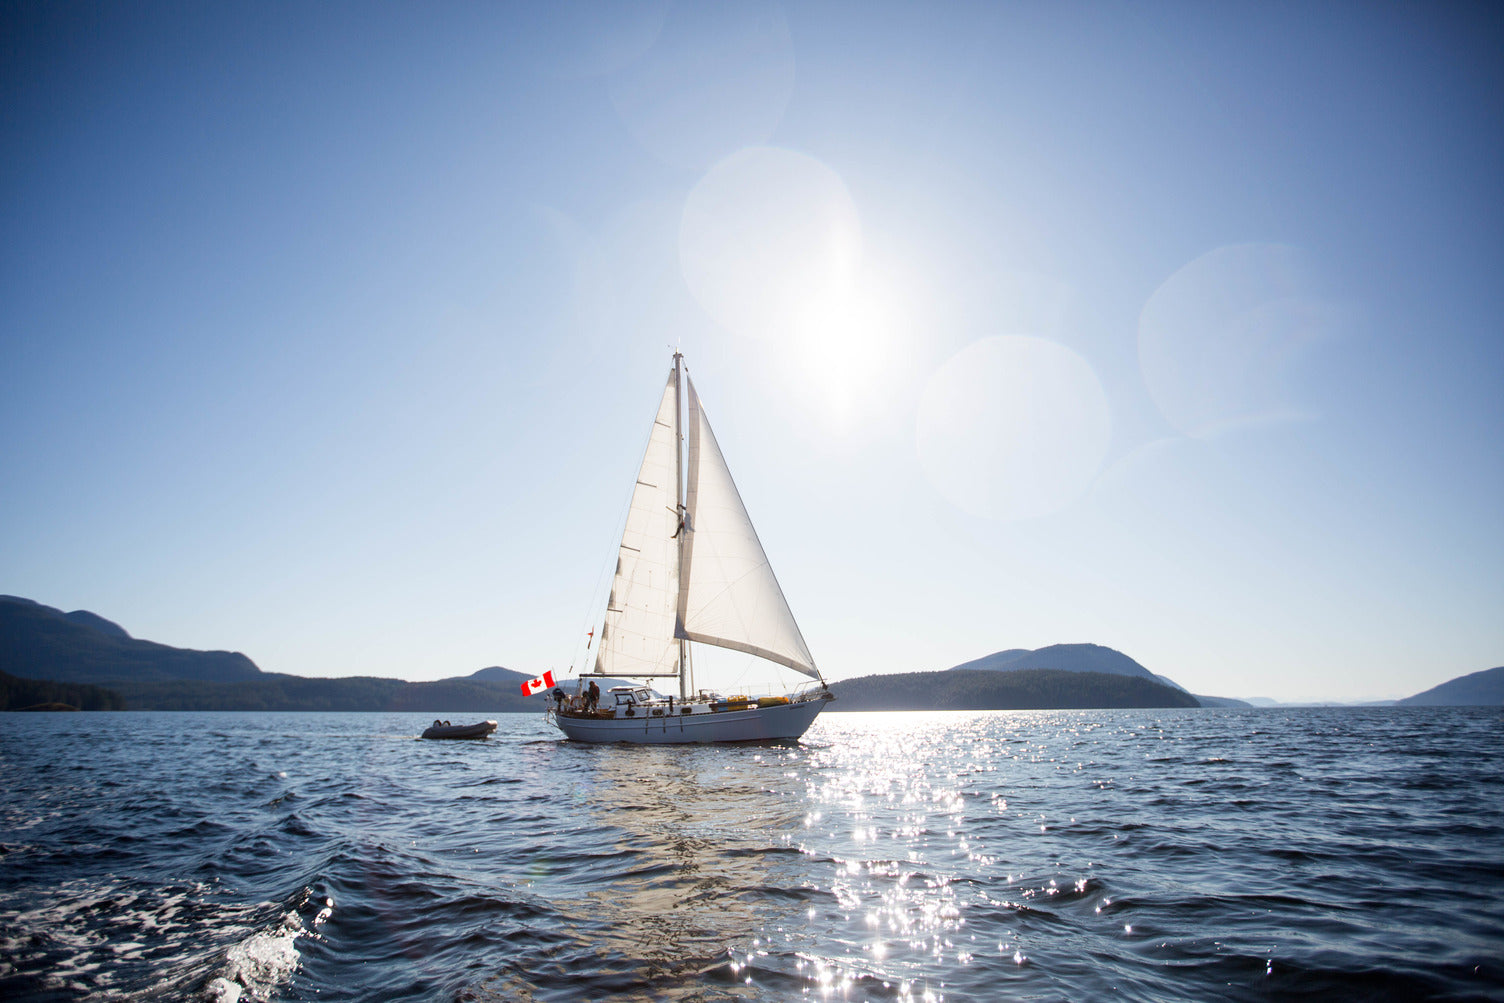 sail boat gliding in BC waters